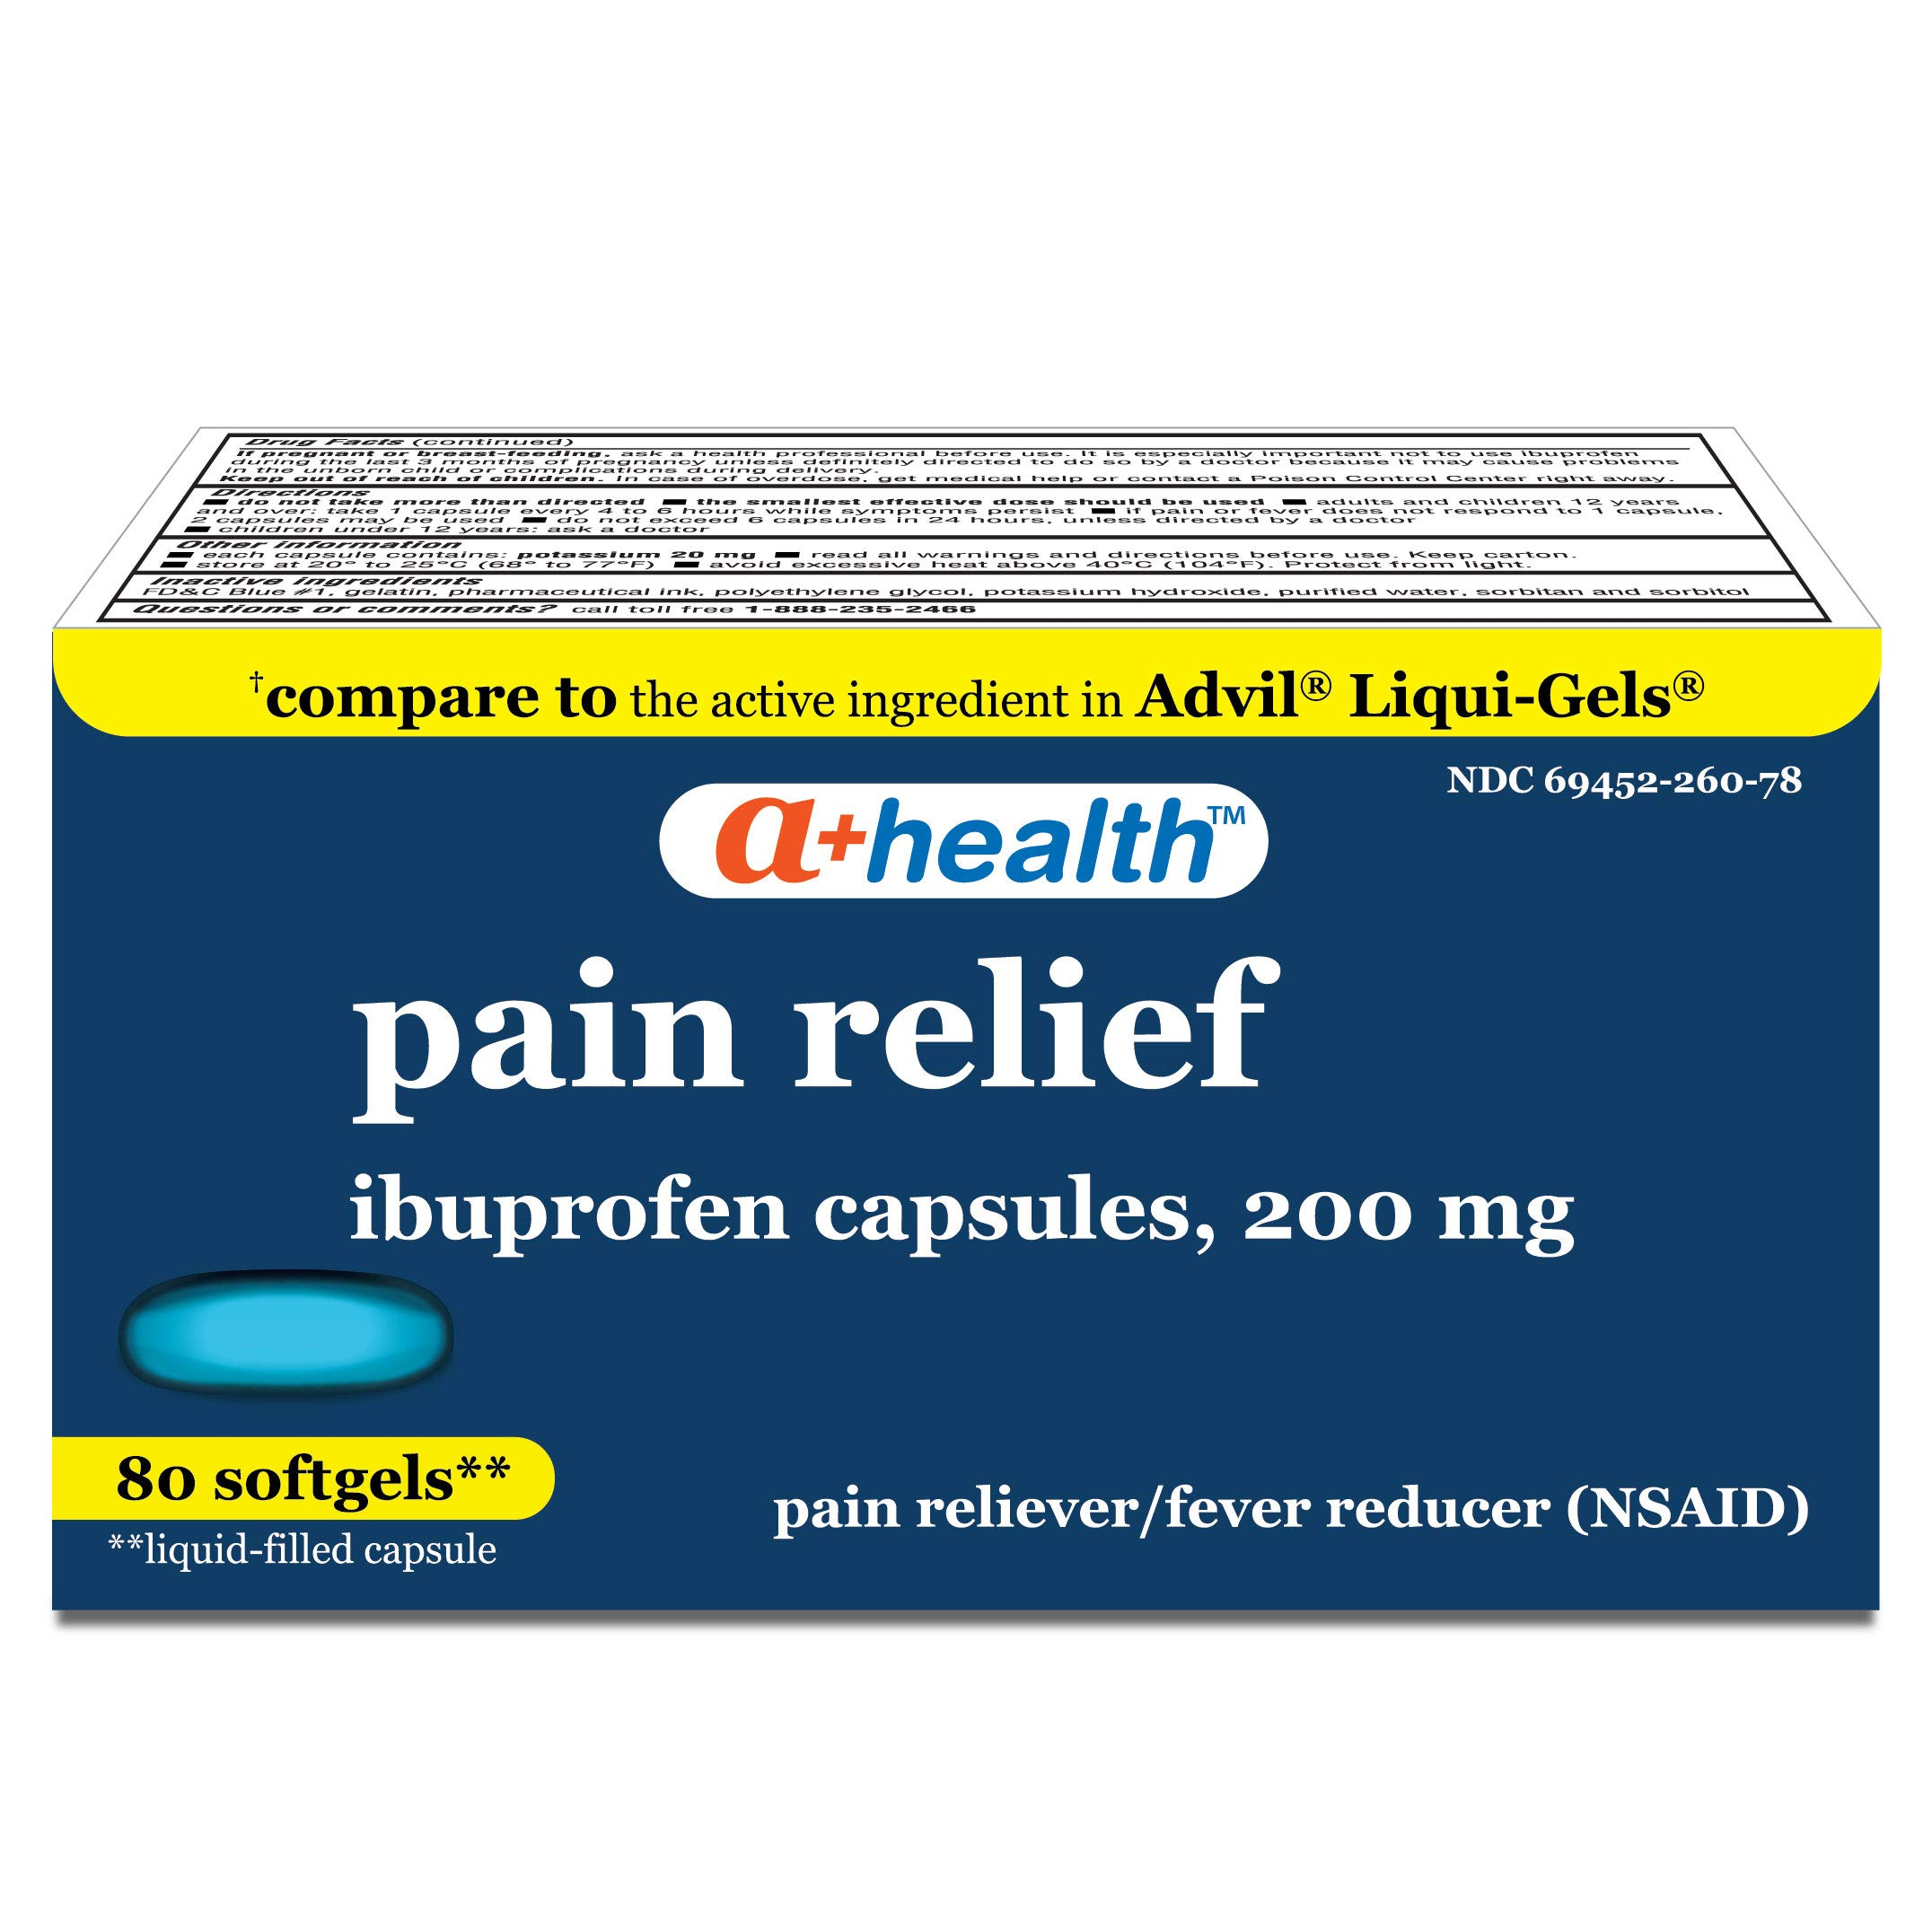 A+Health Ibuprofen 200 Mg Softgels, Pain Reliever/Fever Reducer (NSAID), Made in USA, 80 Count